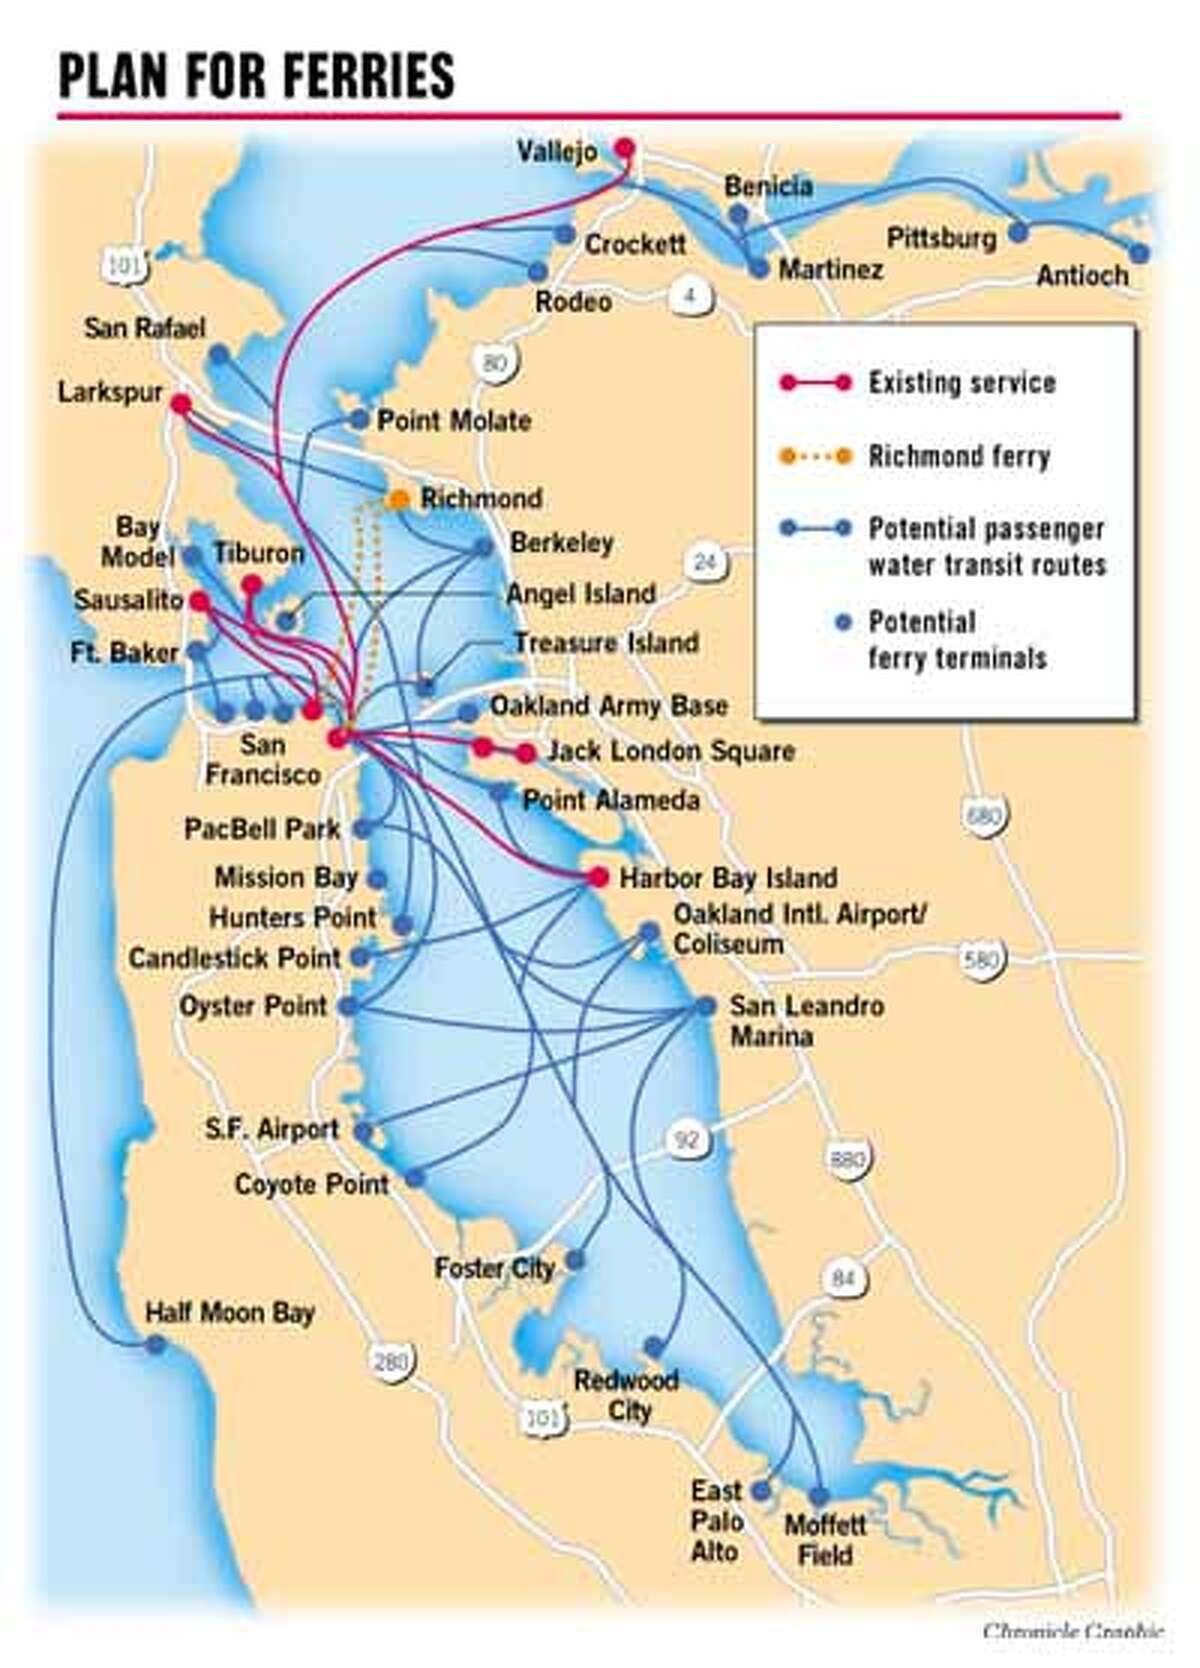 Plan for ferries. Chronicle Graphic